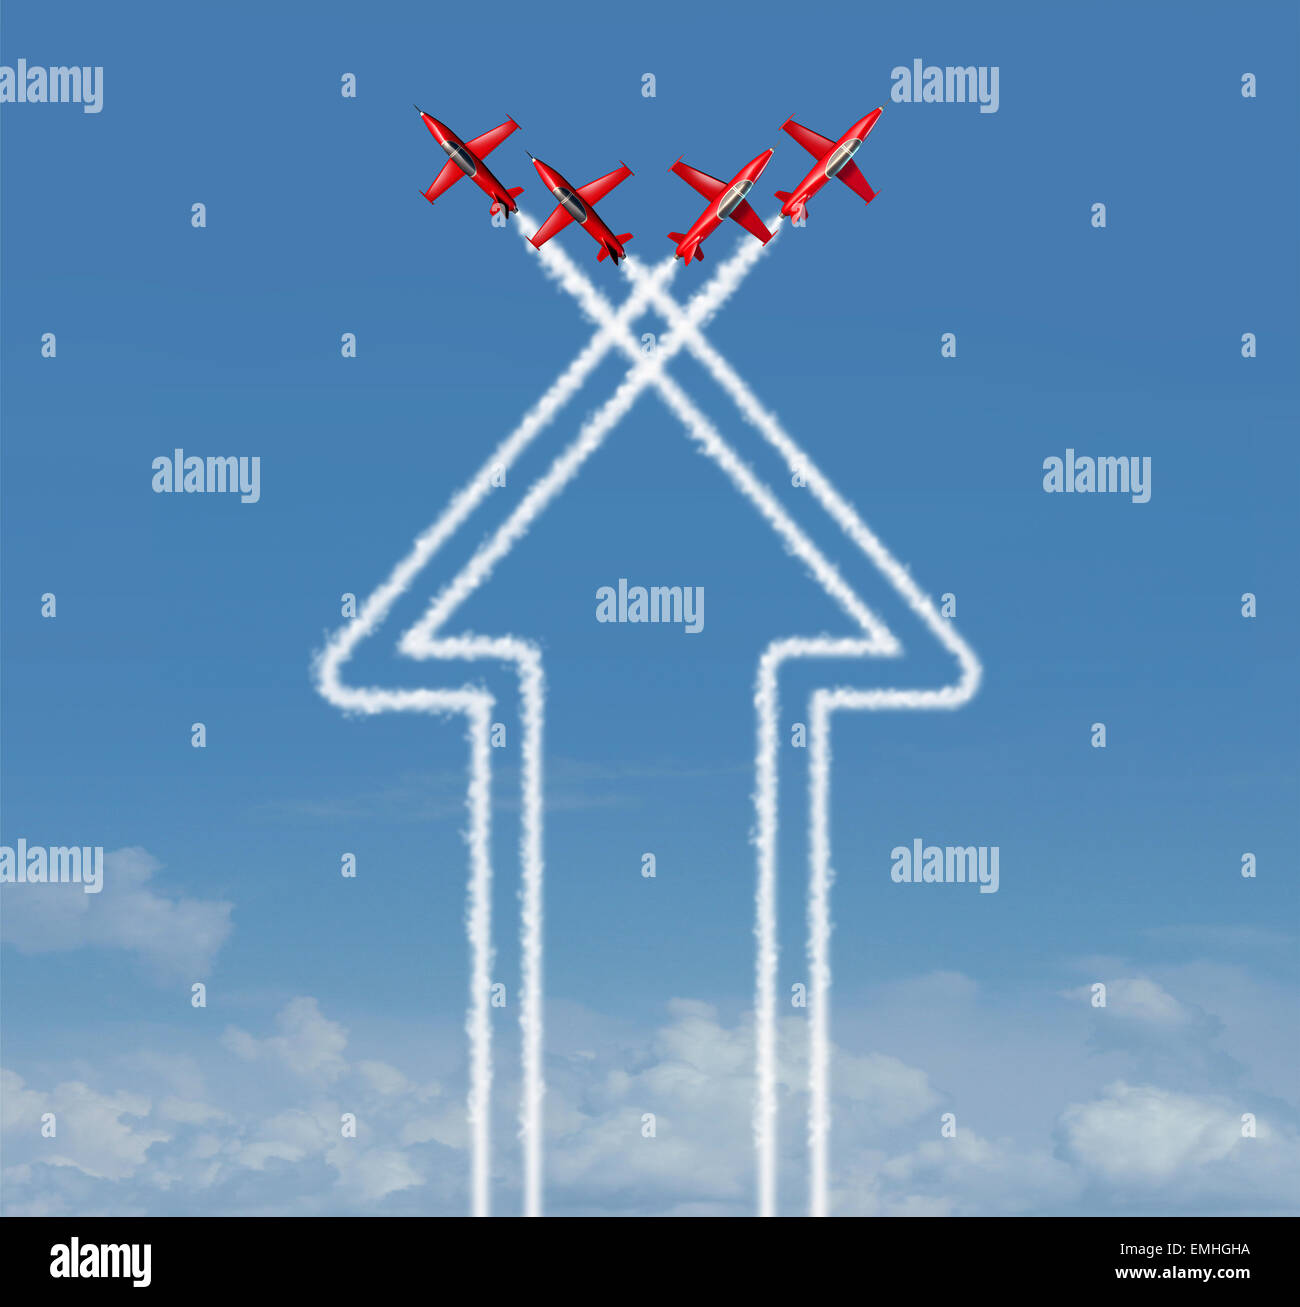 Organization concept as an up arrow symbol and icon for success made from an organized group of flying jet airplanes - Stock Image